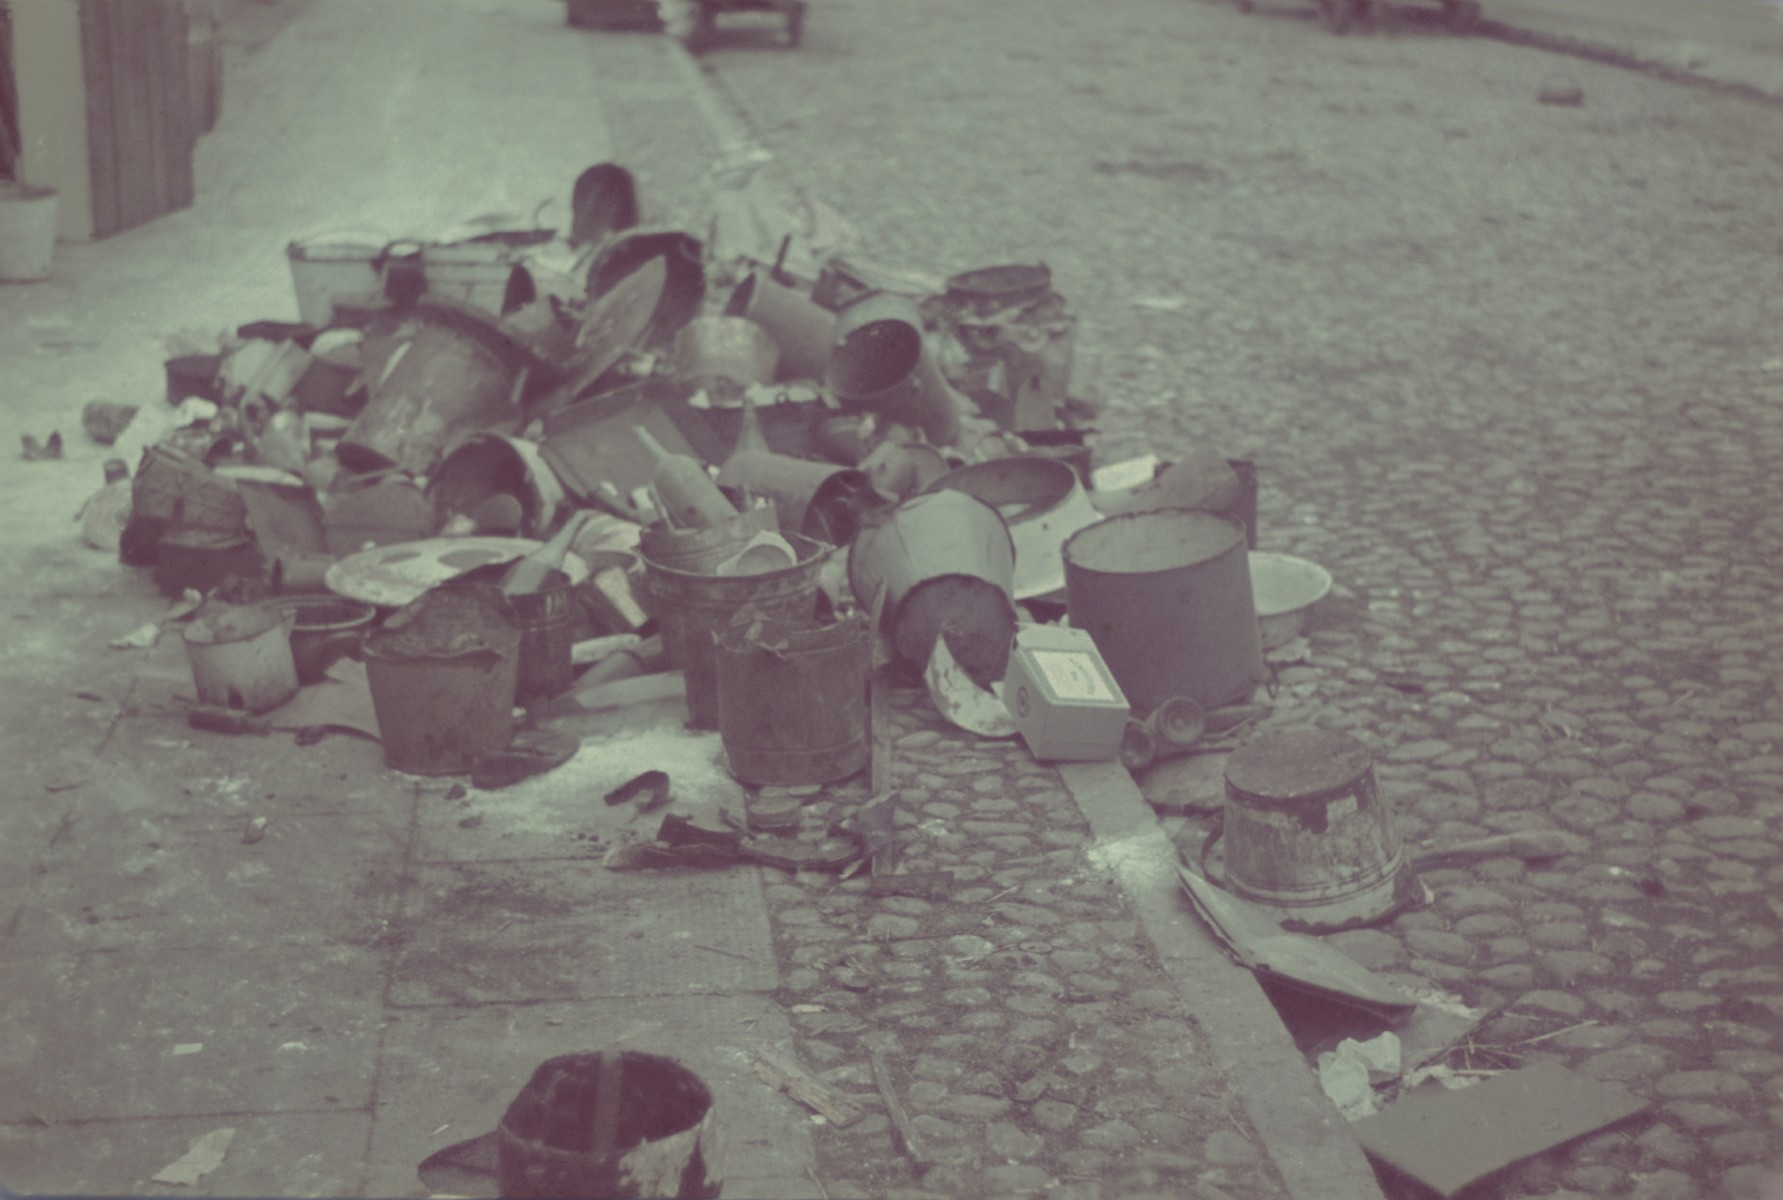 Discarded buckets and other personal belongings lies in a pile on a street of the Lodz ghetto.